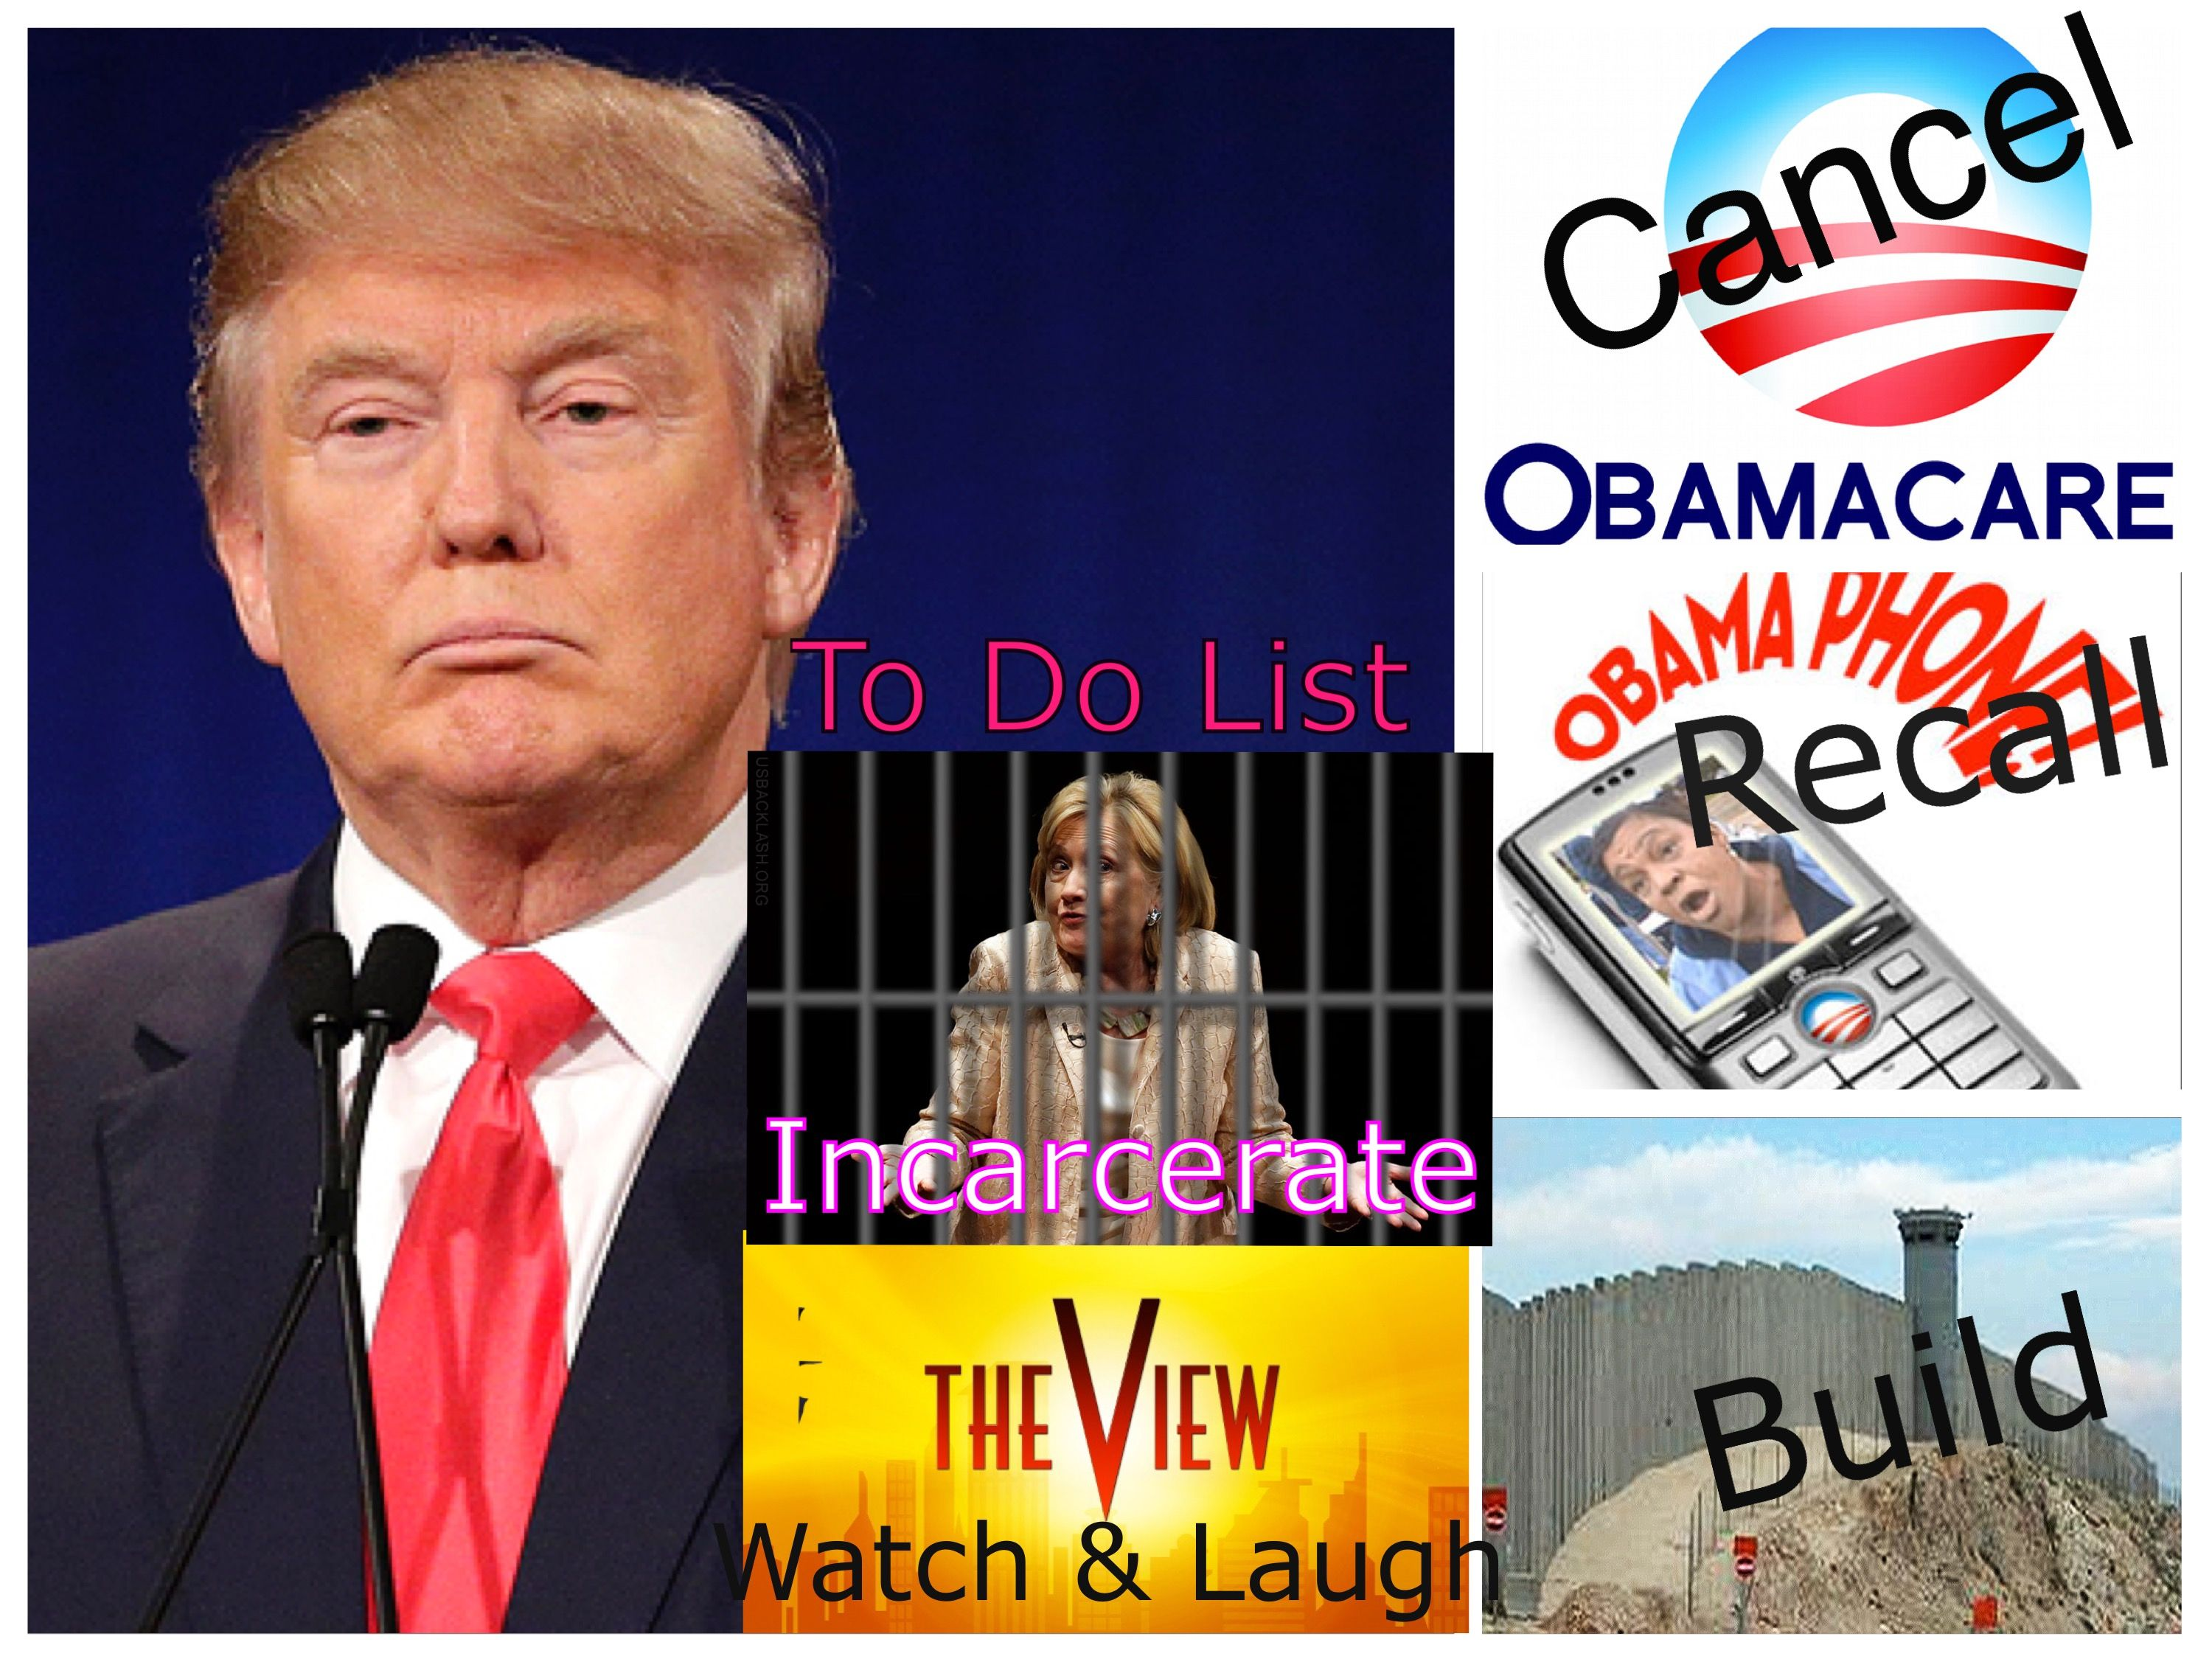 President of the United States Donald Trump - To do list.  Hillary goes to jail. Obamacare repealed, build a wall, the view